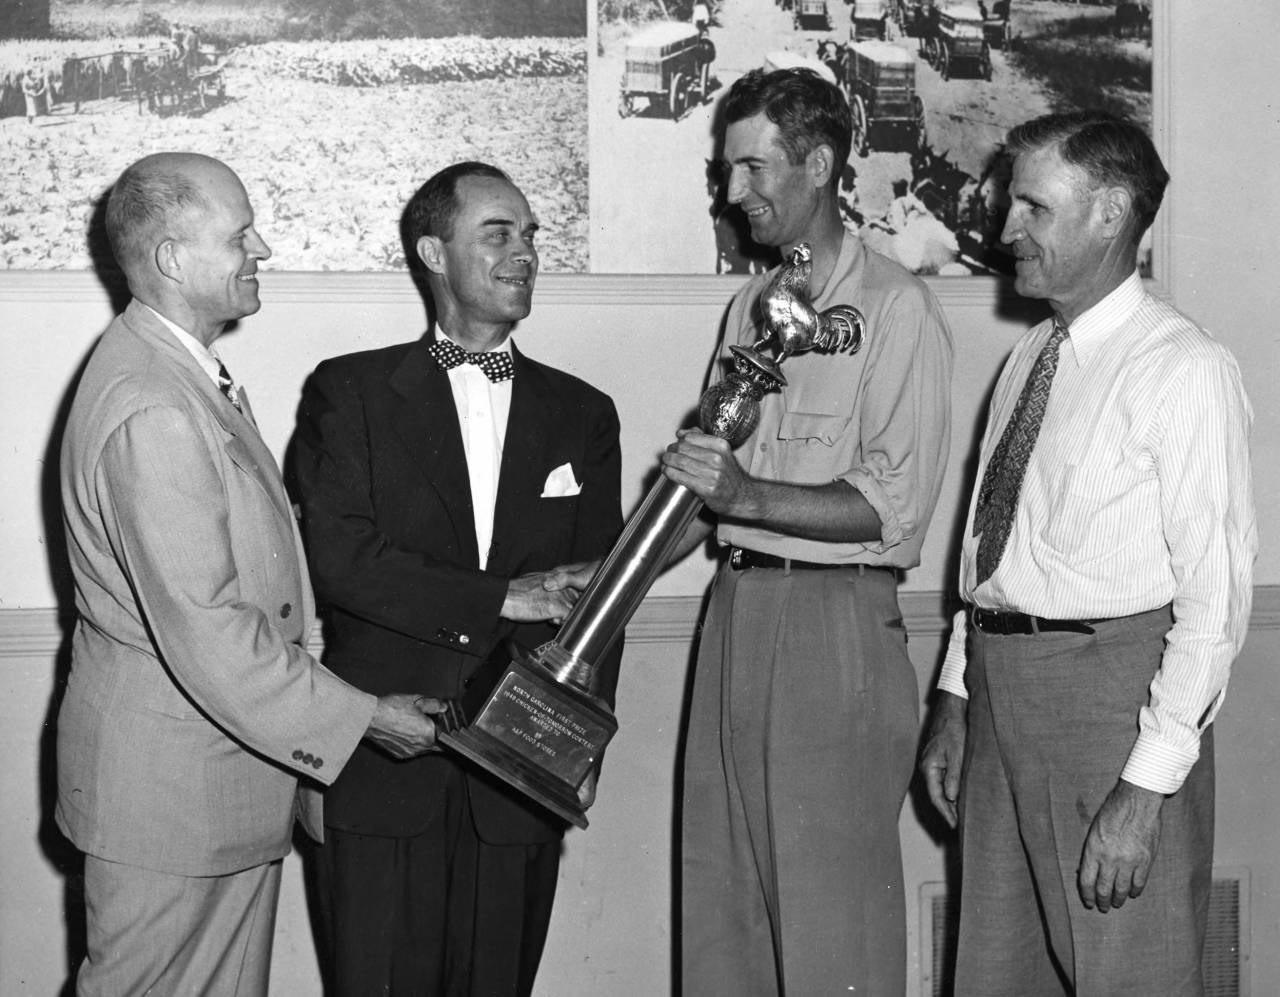 First Prize Winner of Chicken-Of-Tomorrow Contest Subjects: Poultry Awards Item identifier: ua023_007-007-bx0022-002-007 Created Date: 1949 Description: Transcribed from back:Left to right: H. L. Shrader, USDA; Lloyd A. Bell, A&P Food Stores; H. Bernard Helm's, Monroe, N. C. and C. J. Mairpin